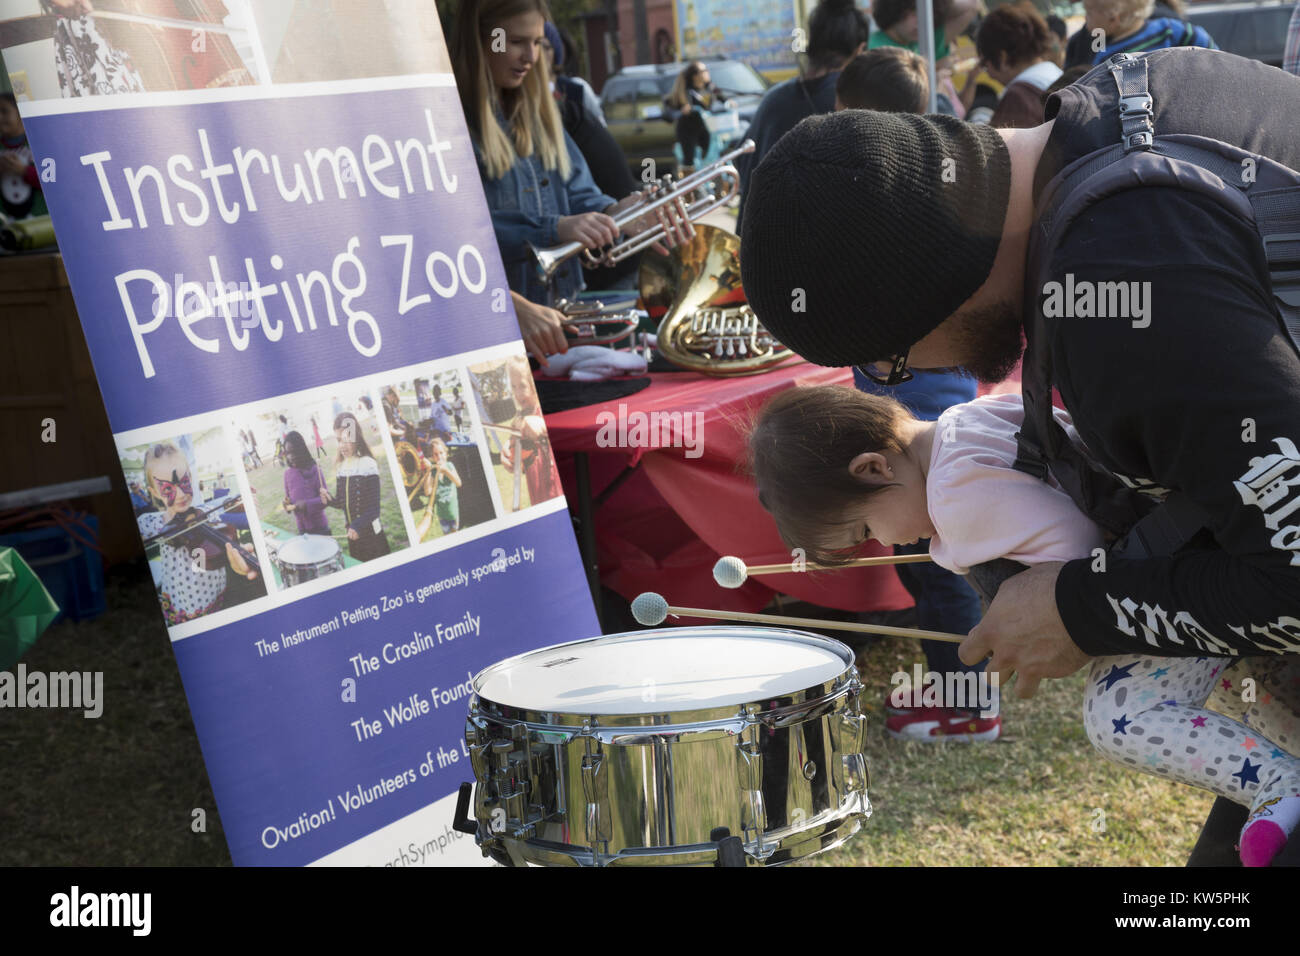 A father leans over to drum with his toddler daughter in a chest carrier at Long Beach Symphoy's Instrument - Stock Image